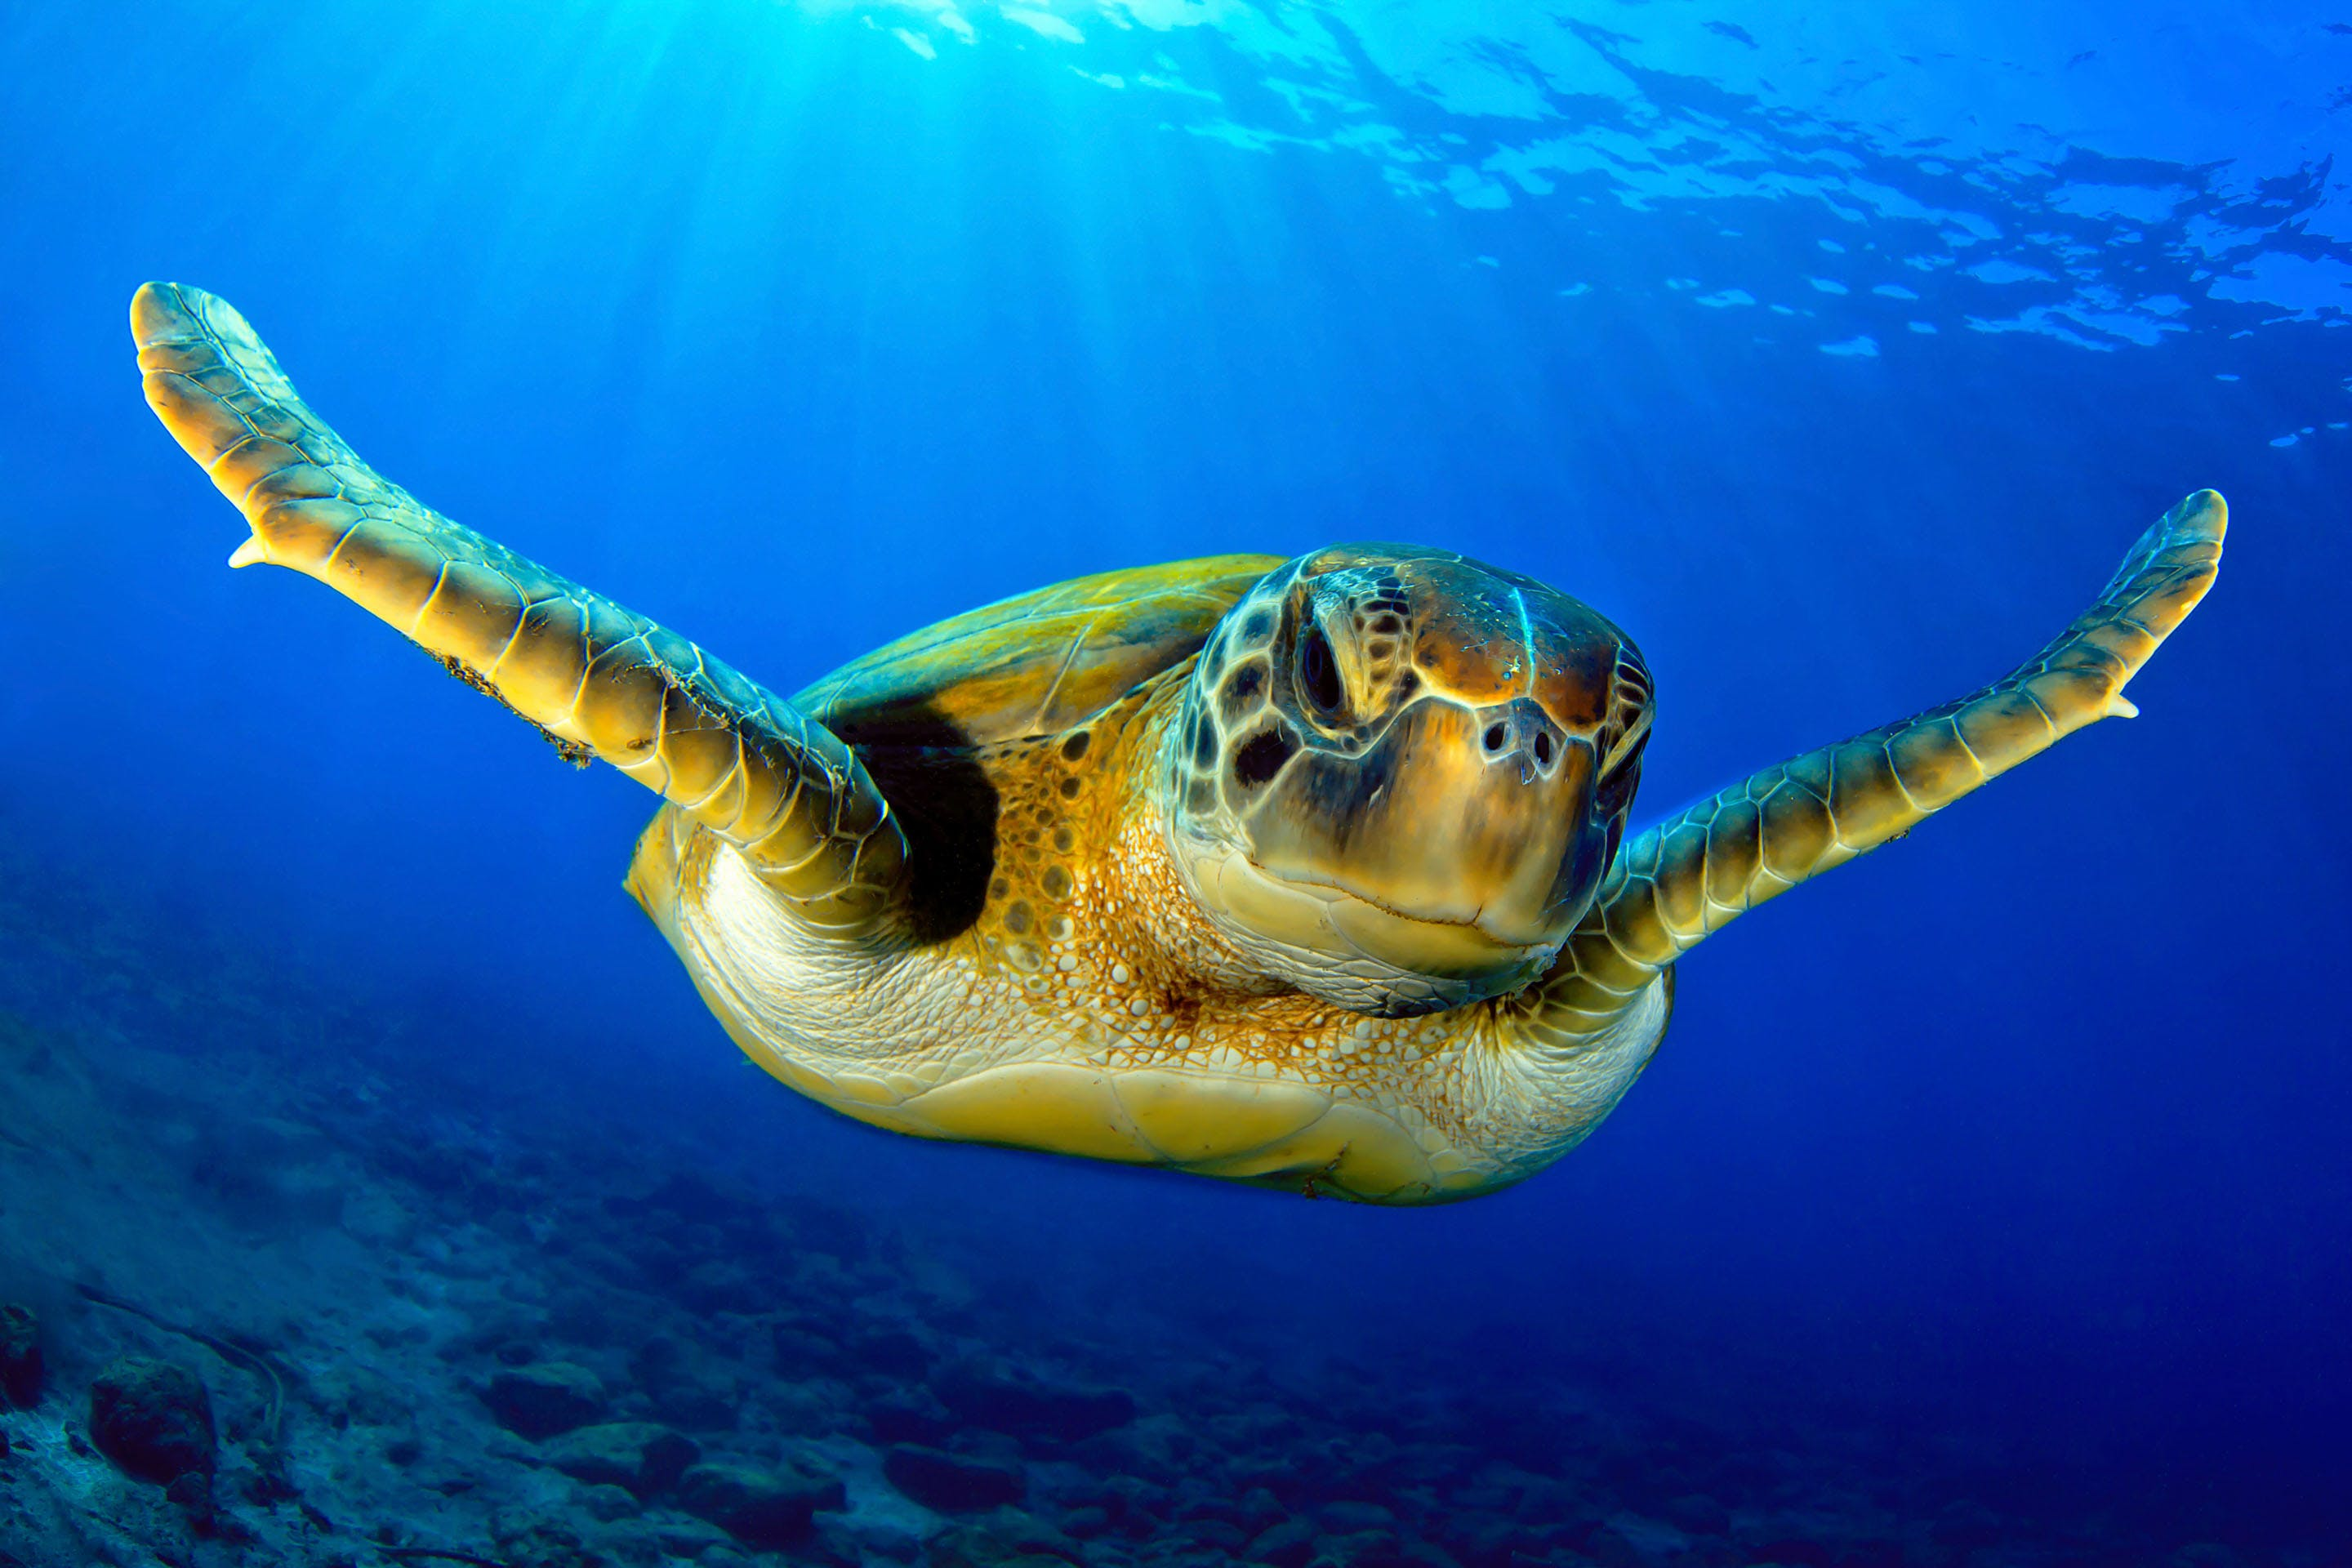 Green turtle oceans mozambique top diving spots in africa